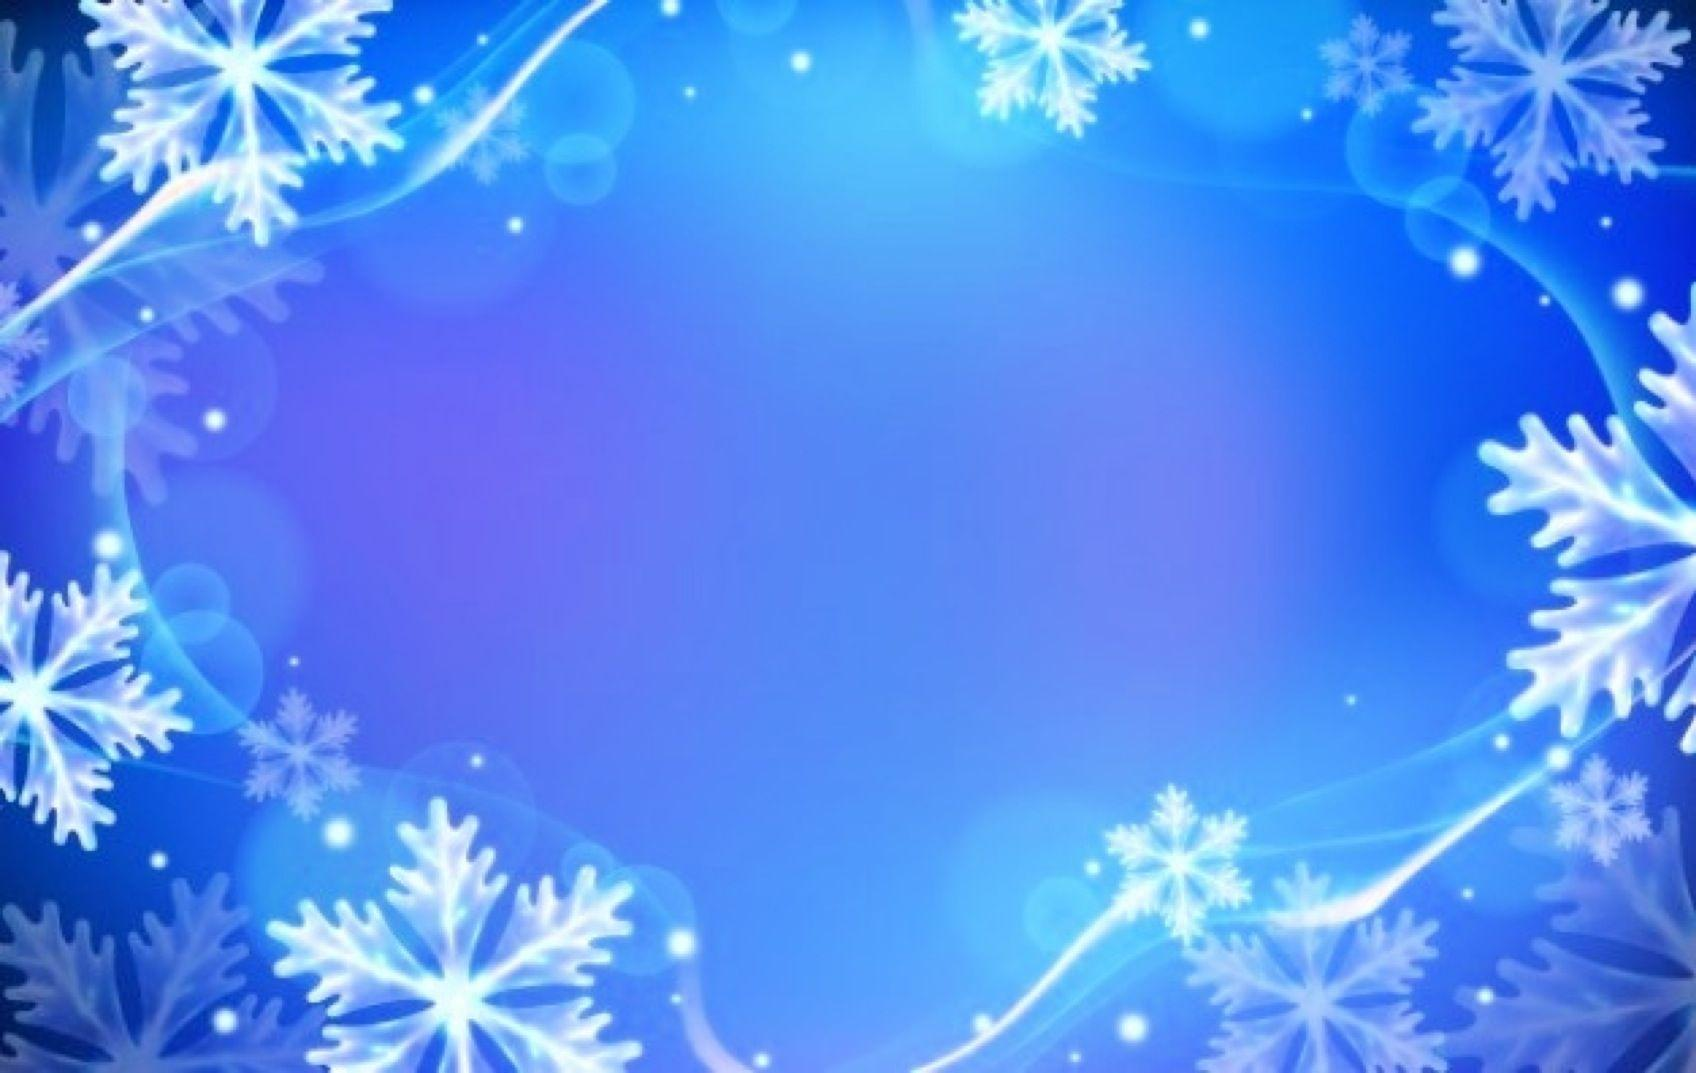 winter holiday backgrounds - wallpaper cave, Powerpoint templates